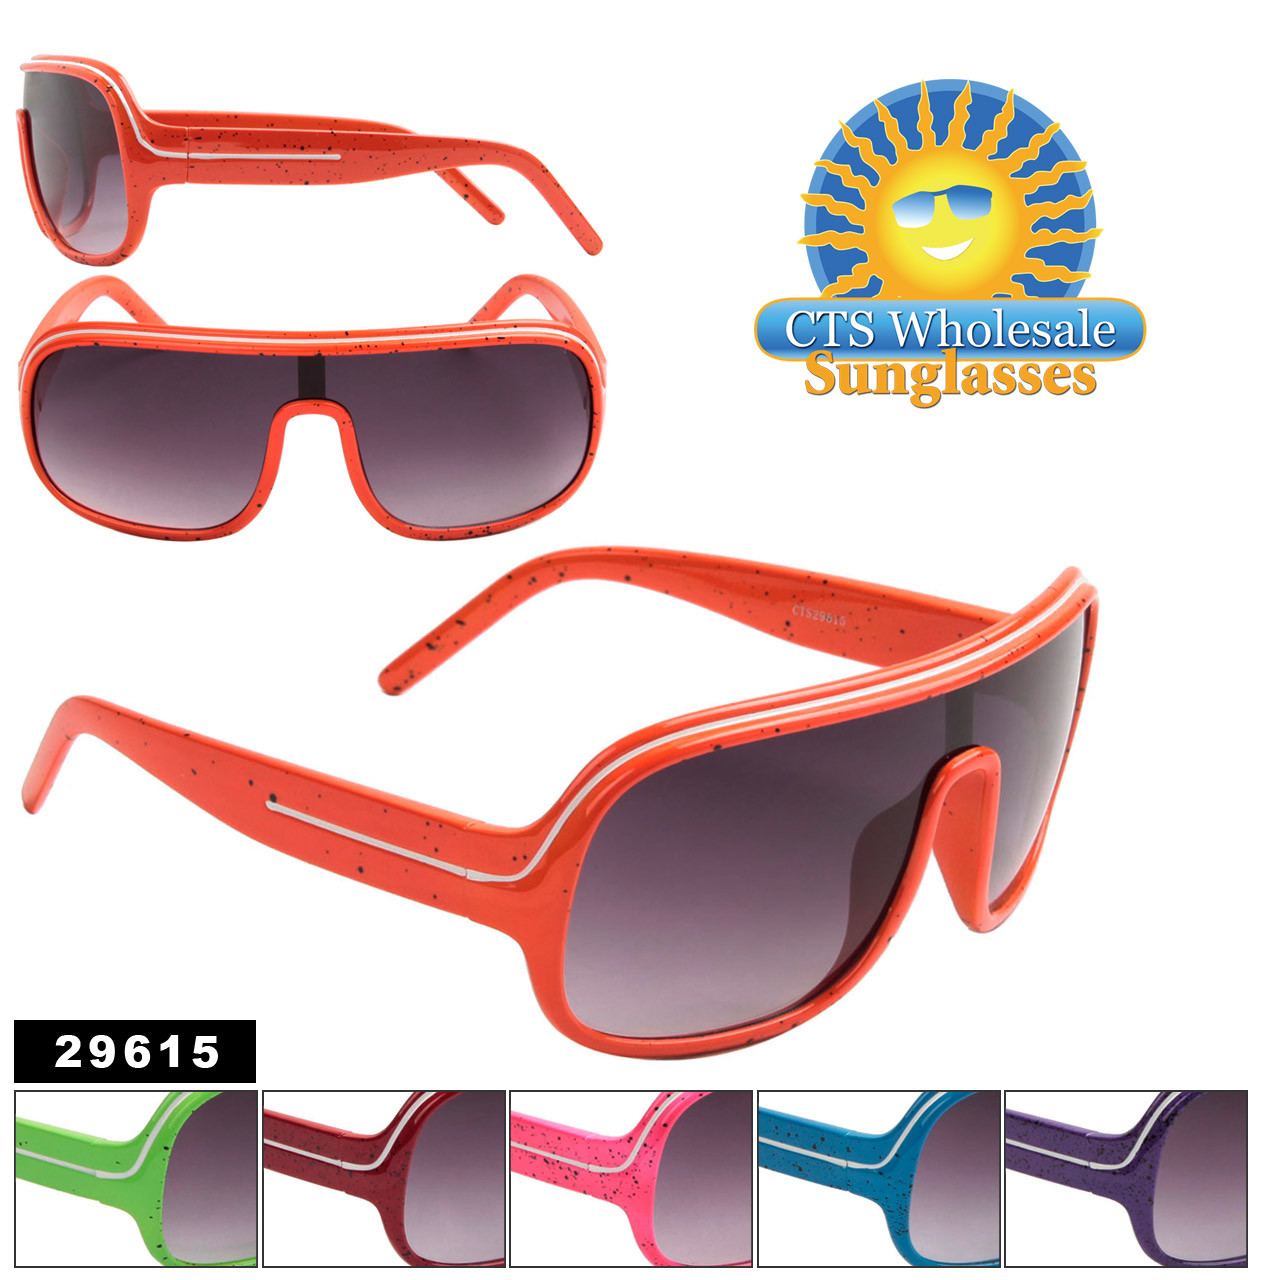 Splatter Paint Sunglasses 29615